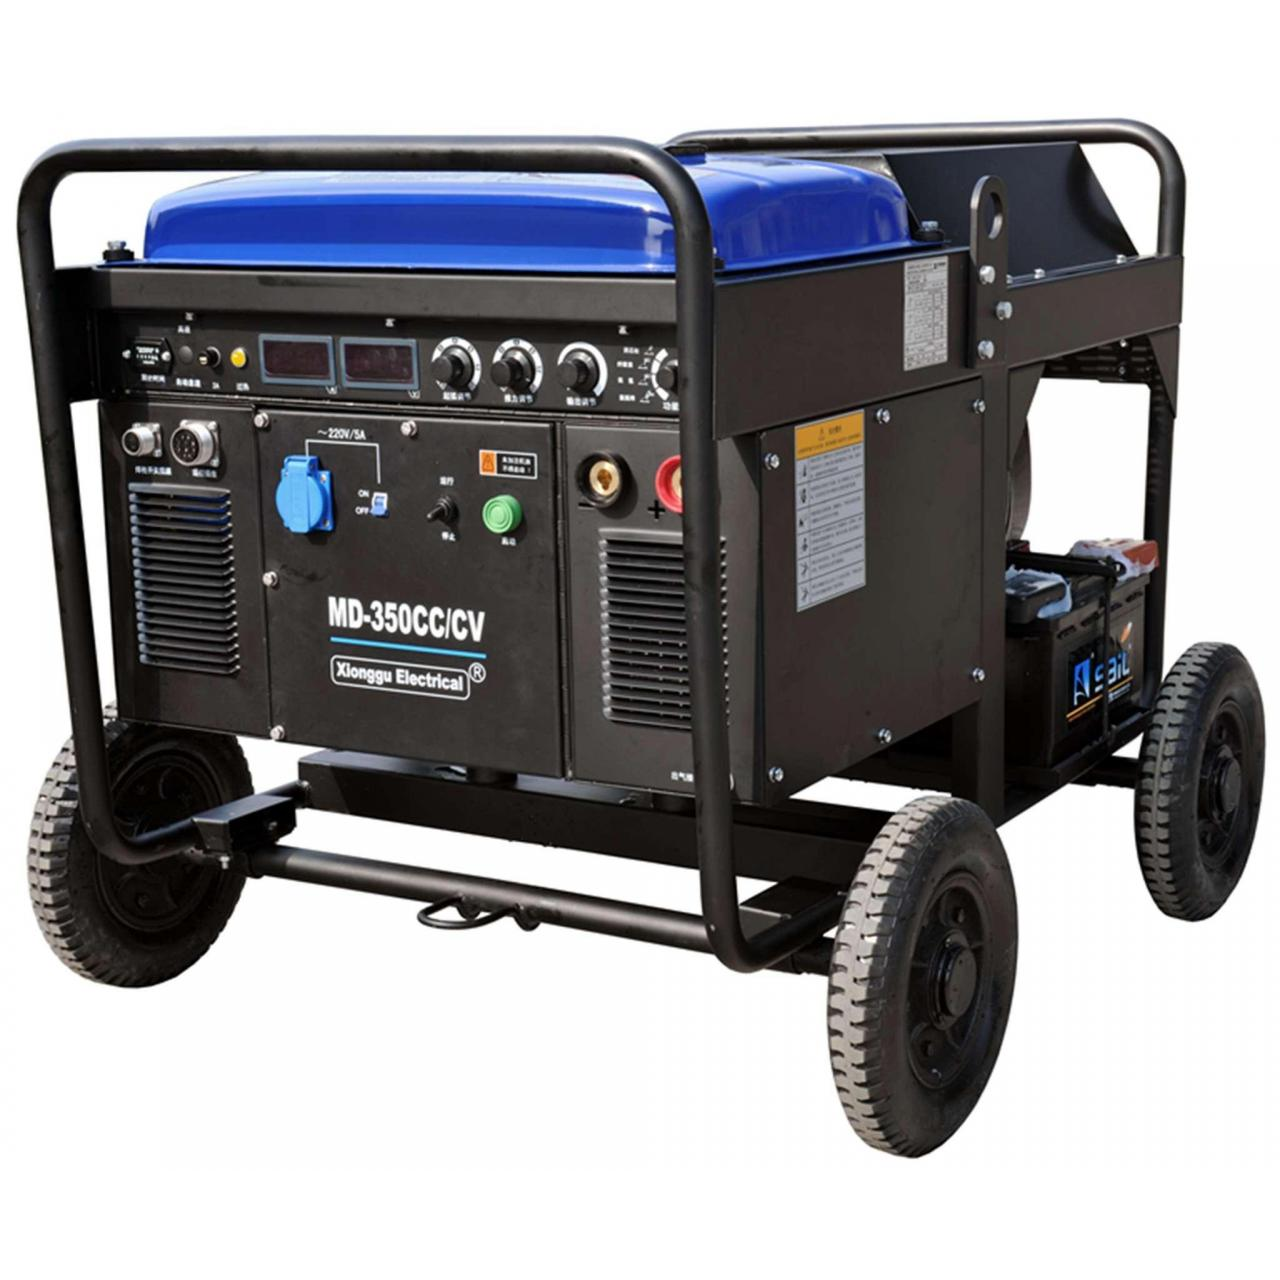 Quality Engine driven welders MD-350CC/CV Multi-Process Welder Driven by Diesel Engine wholesale